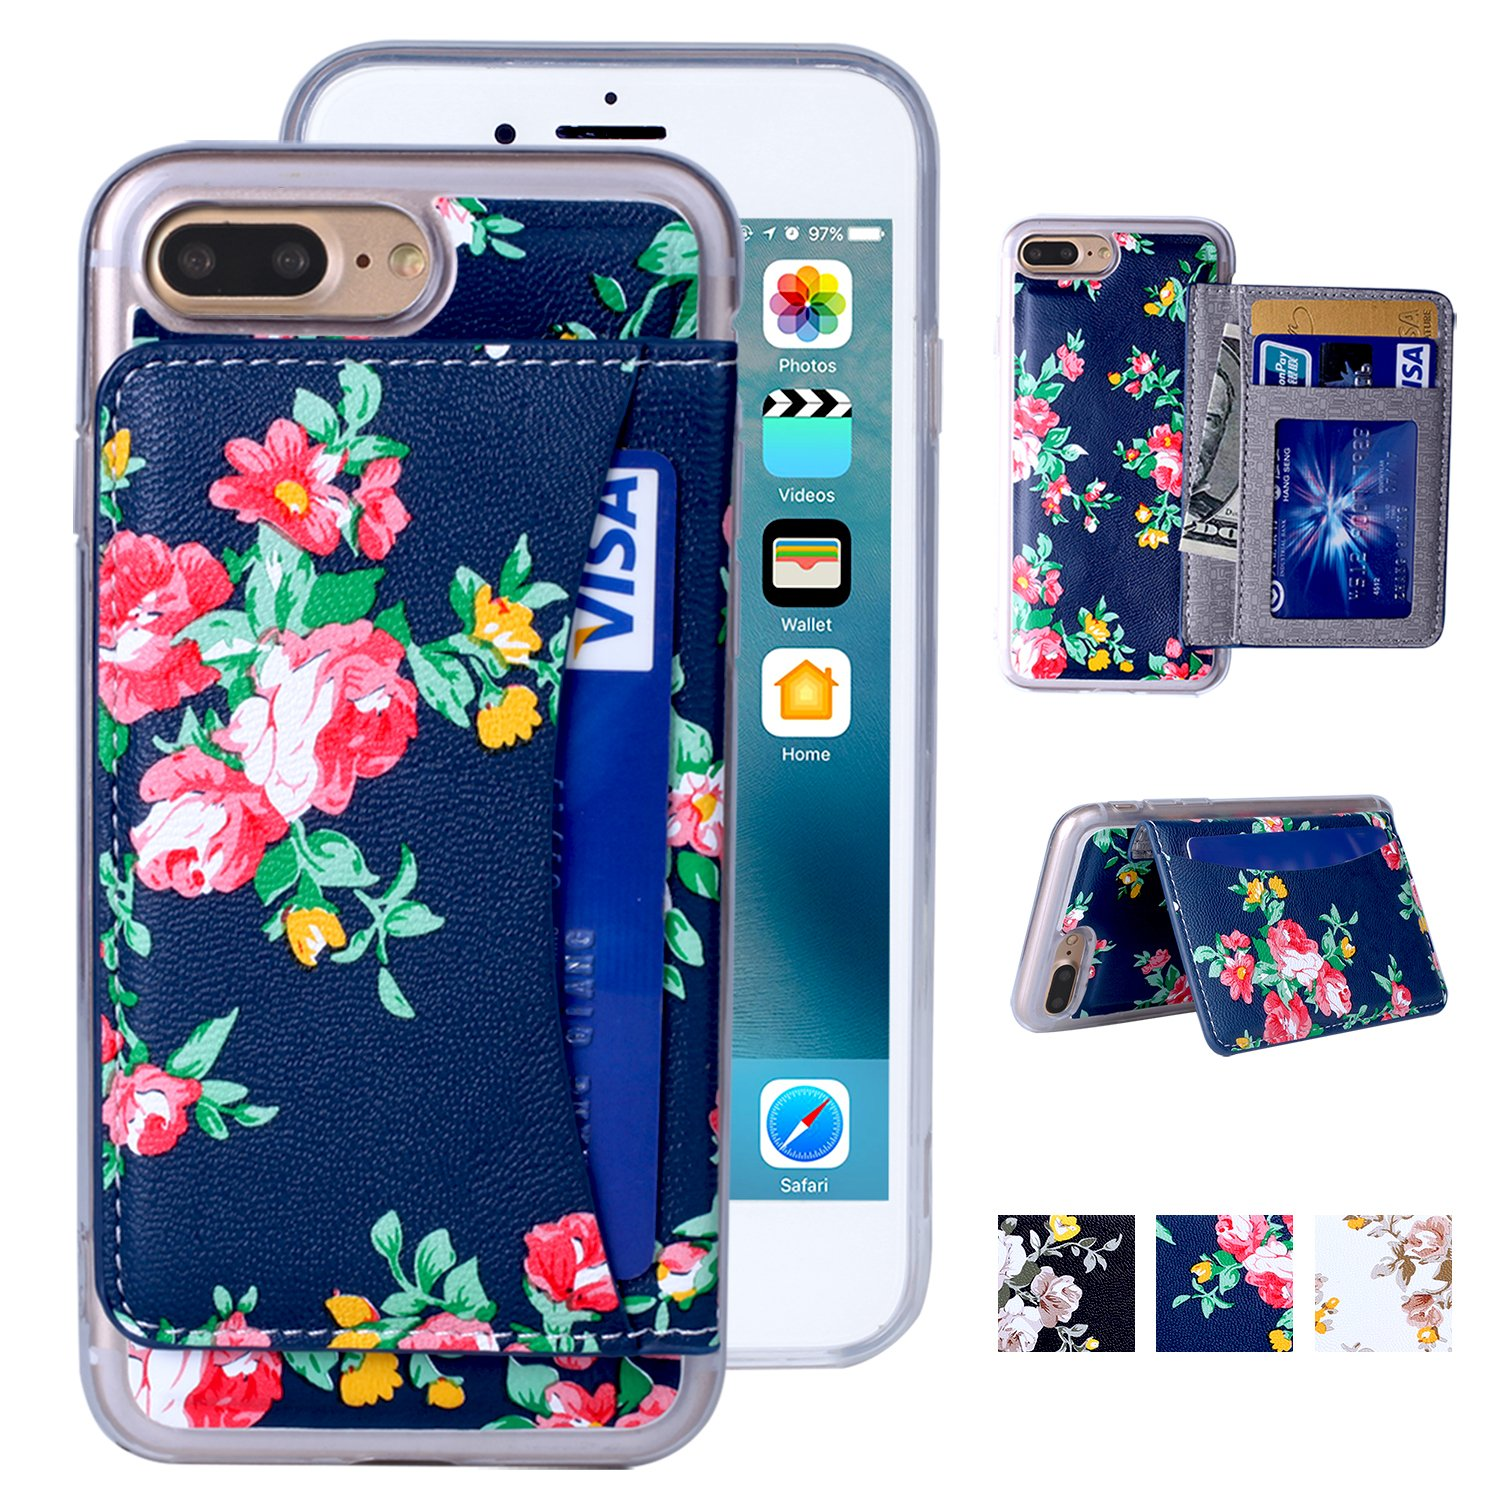 iPhone 7 Plus Case, iPhone 7 Plus Wallet Case, Premium PU Leather Flower Floral Back Folio Flip Wallet Cases Magnetic Holster Phone Case for iPhone 7 Plus (5.5'') with stand, Card Slots-Navy Blue&Red